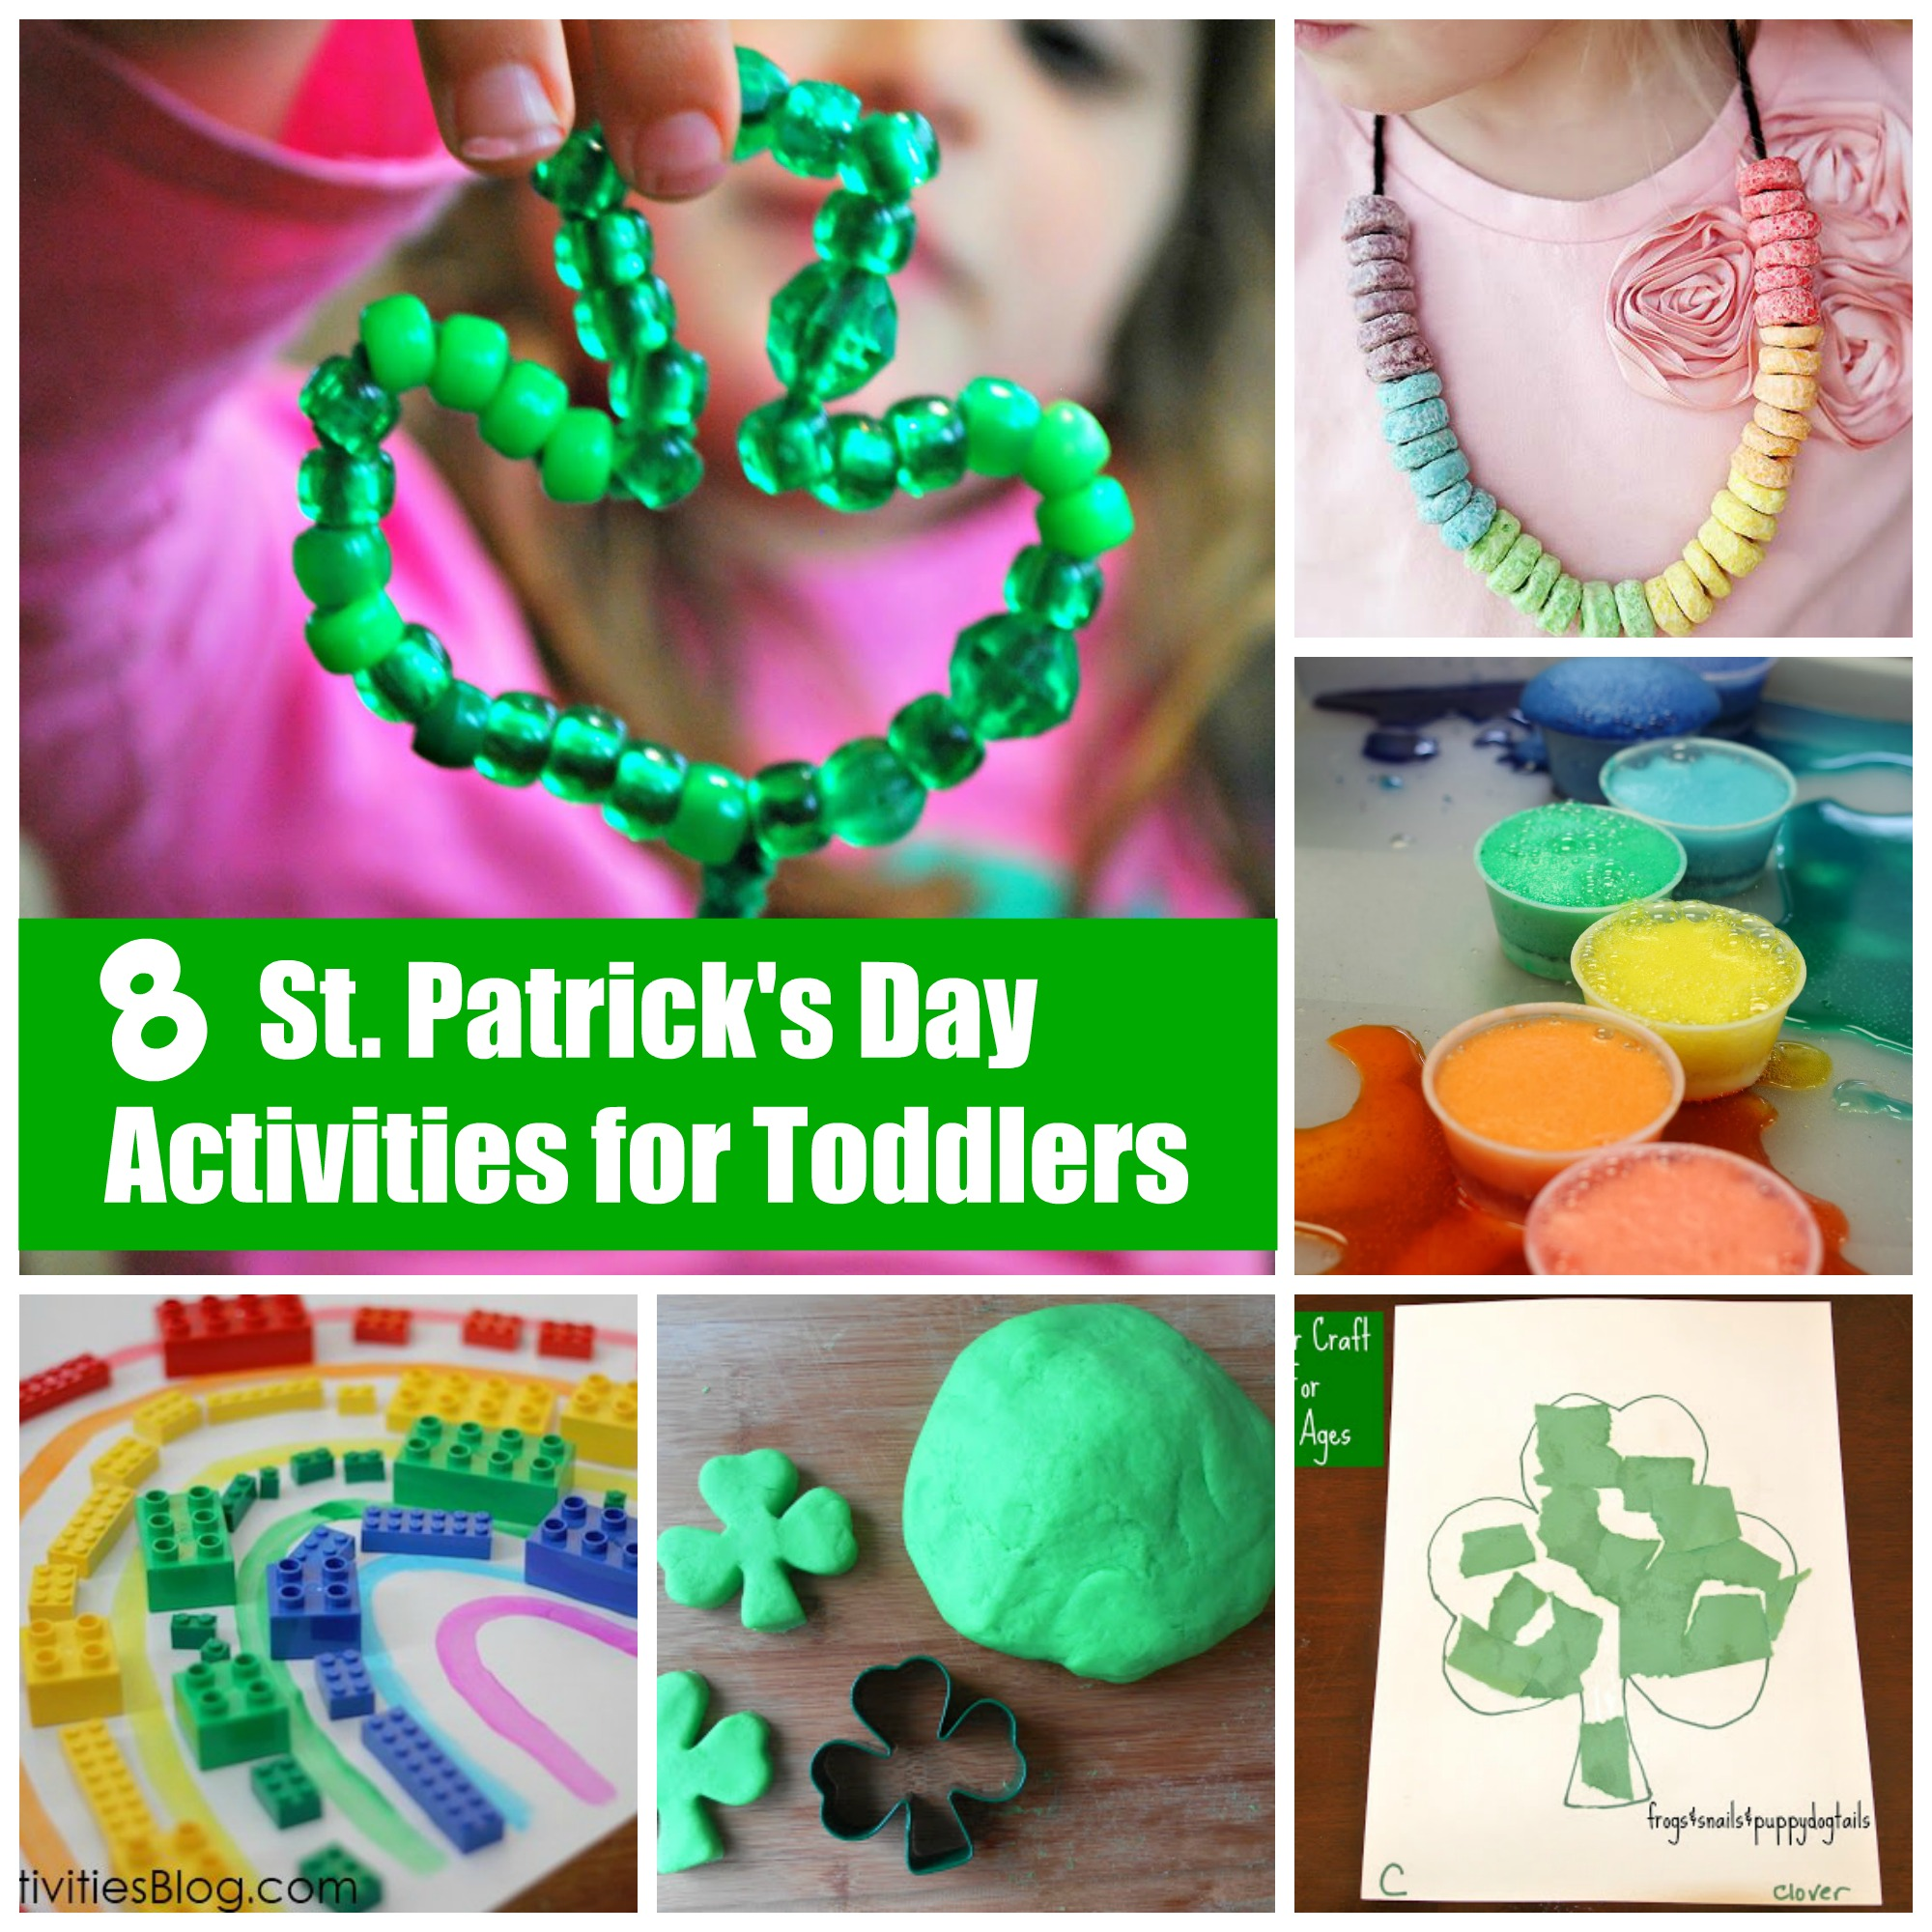 Quick art activities for grade 3 cool art projects for for Fun arts and crafts for 8 year olds